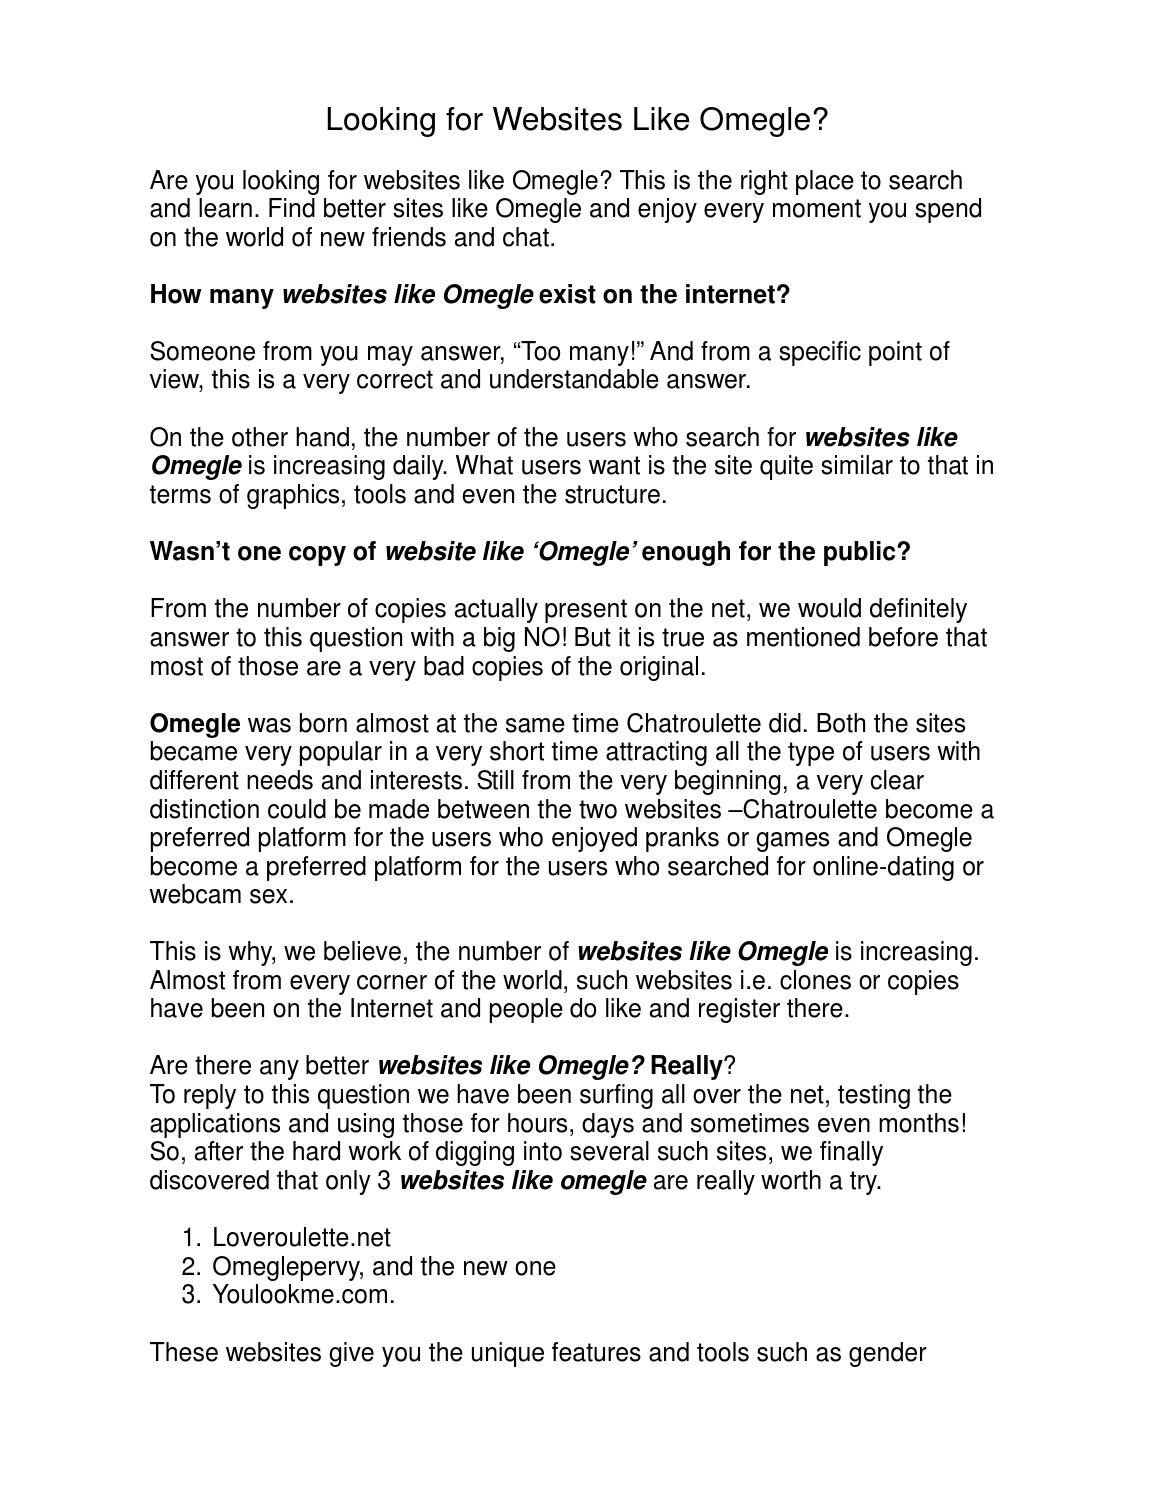 Sites like omegle with interests